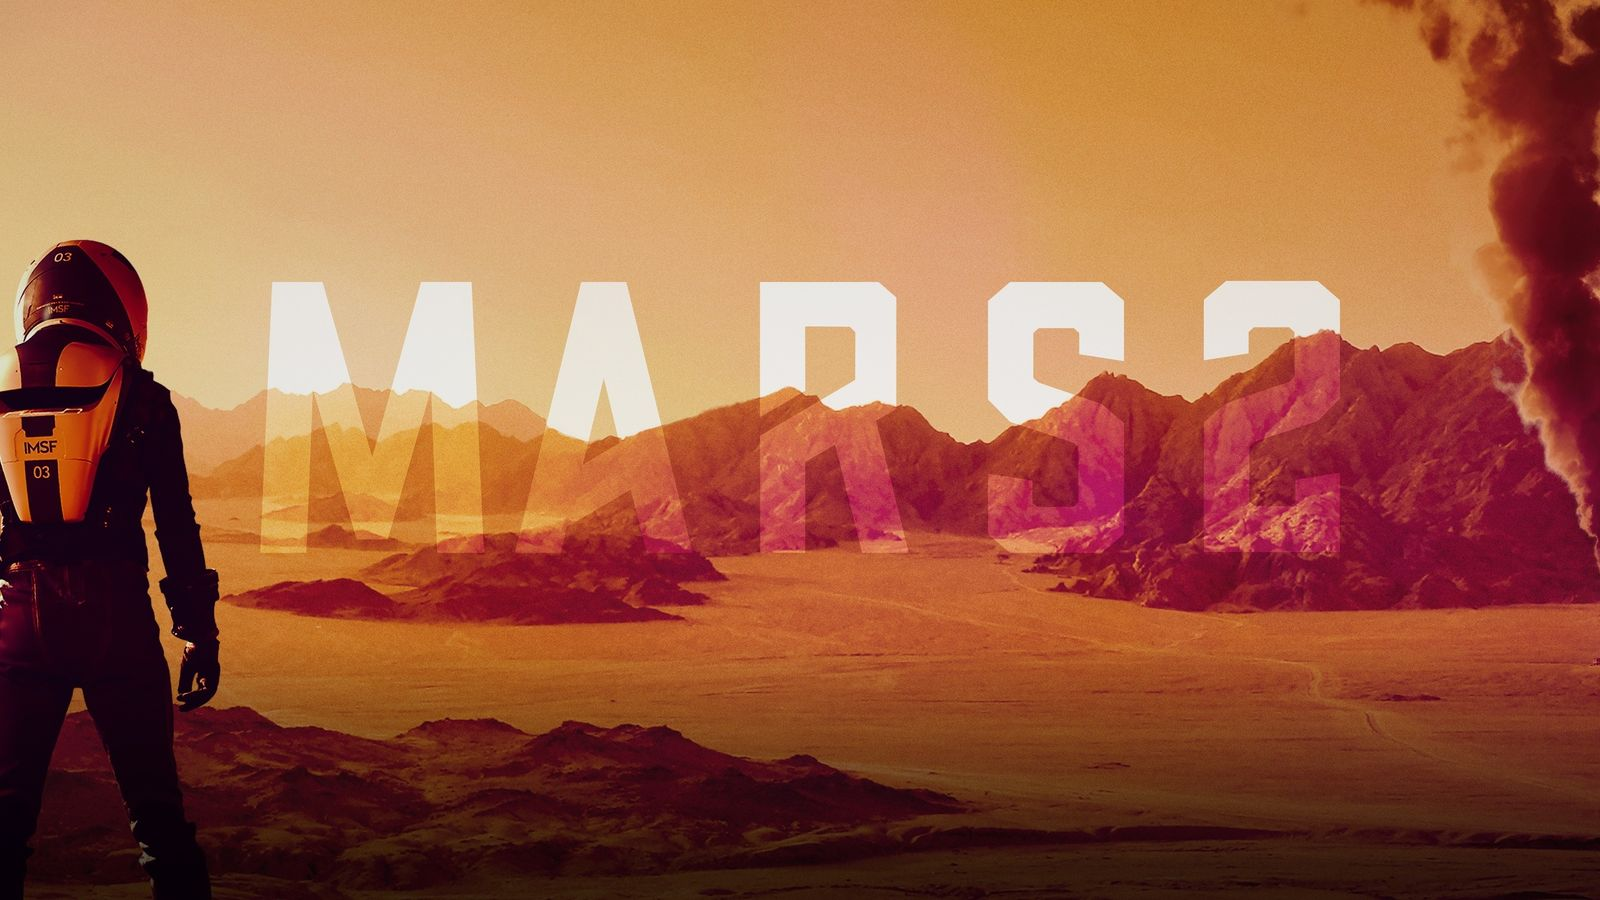 MARS 2 - It's now the year 2042